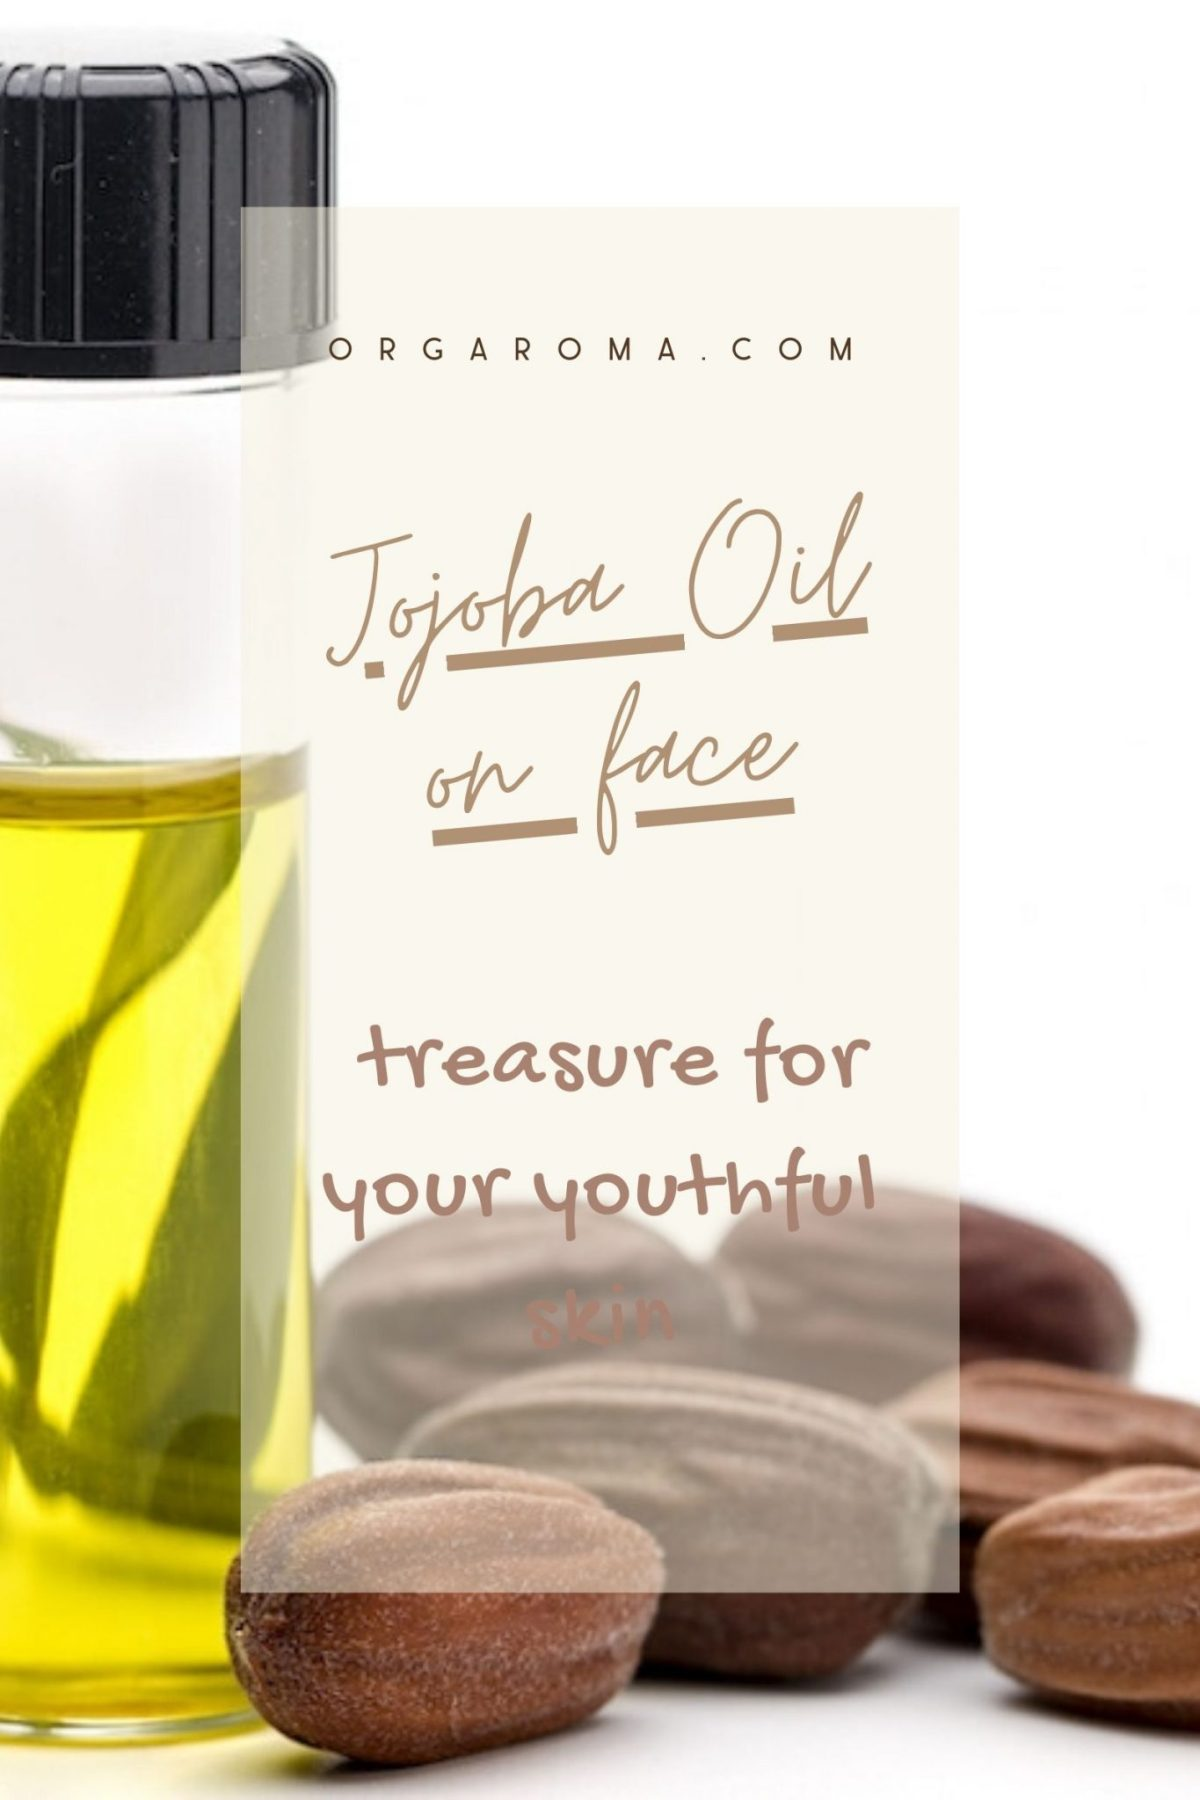 Jojoba oil on face treasure for your youthful skin